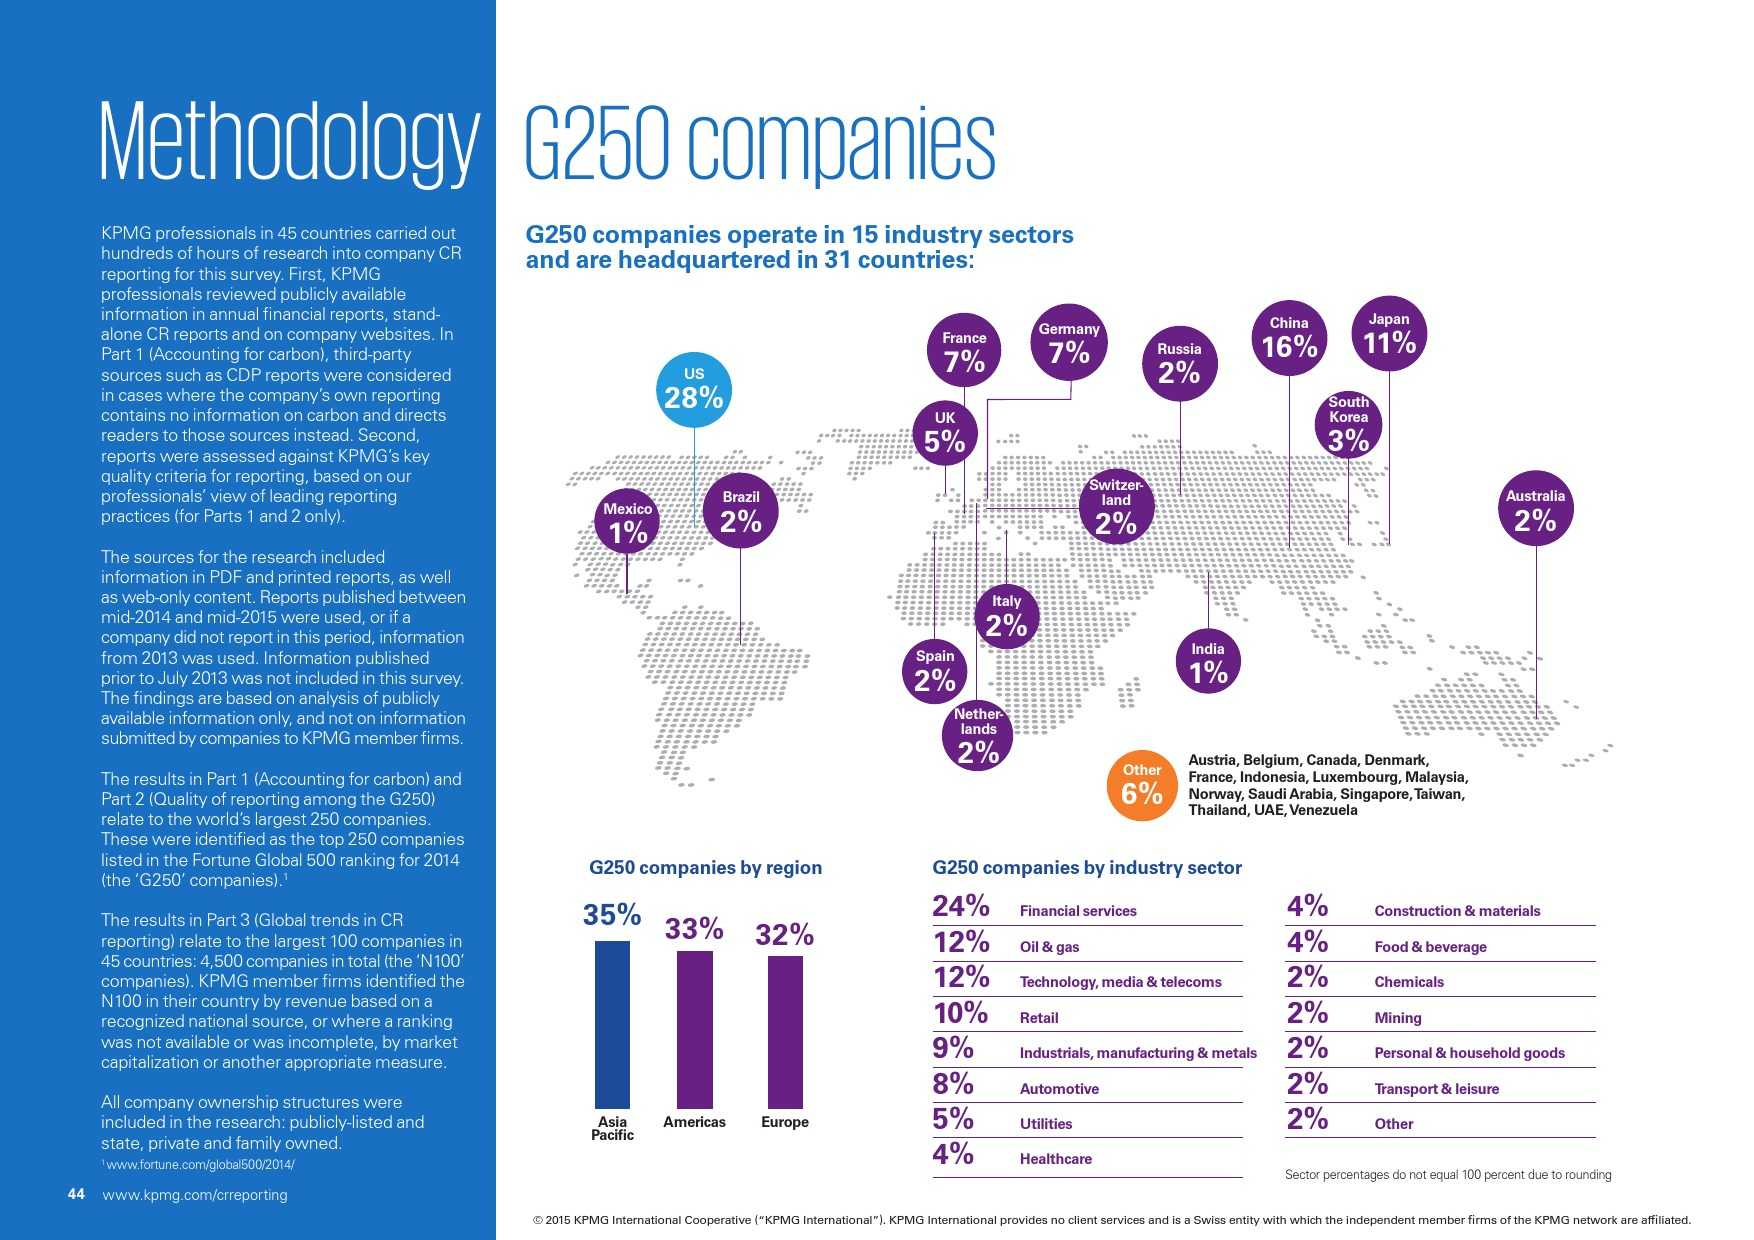 kpmg-international-survey-of-corporate-responsibility-reporting-2015_000044